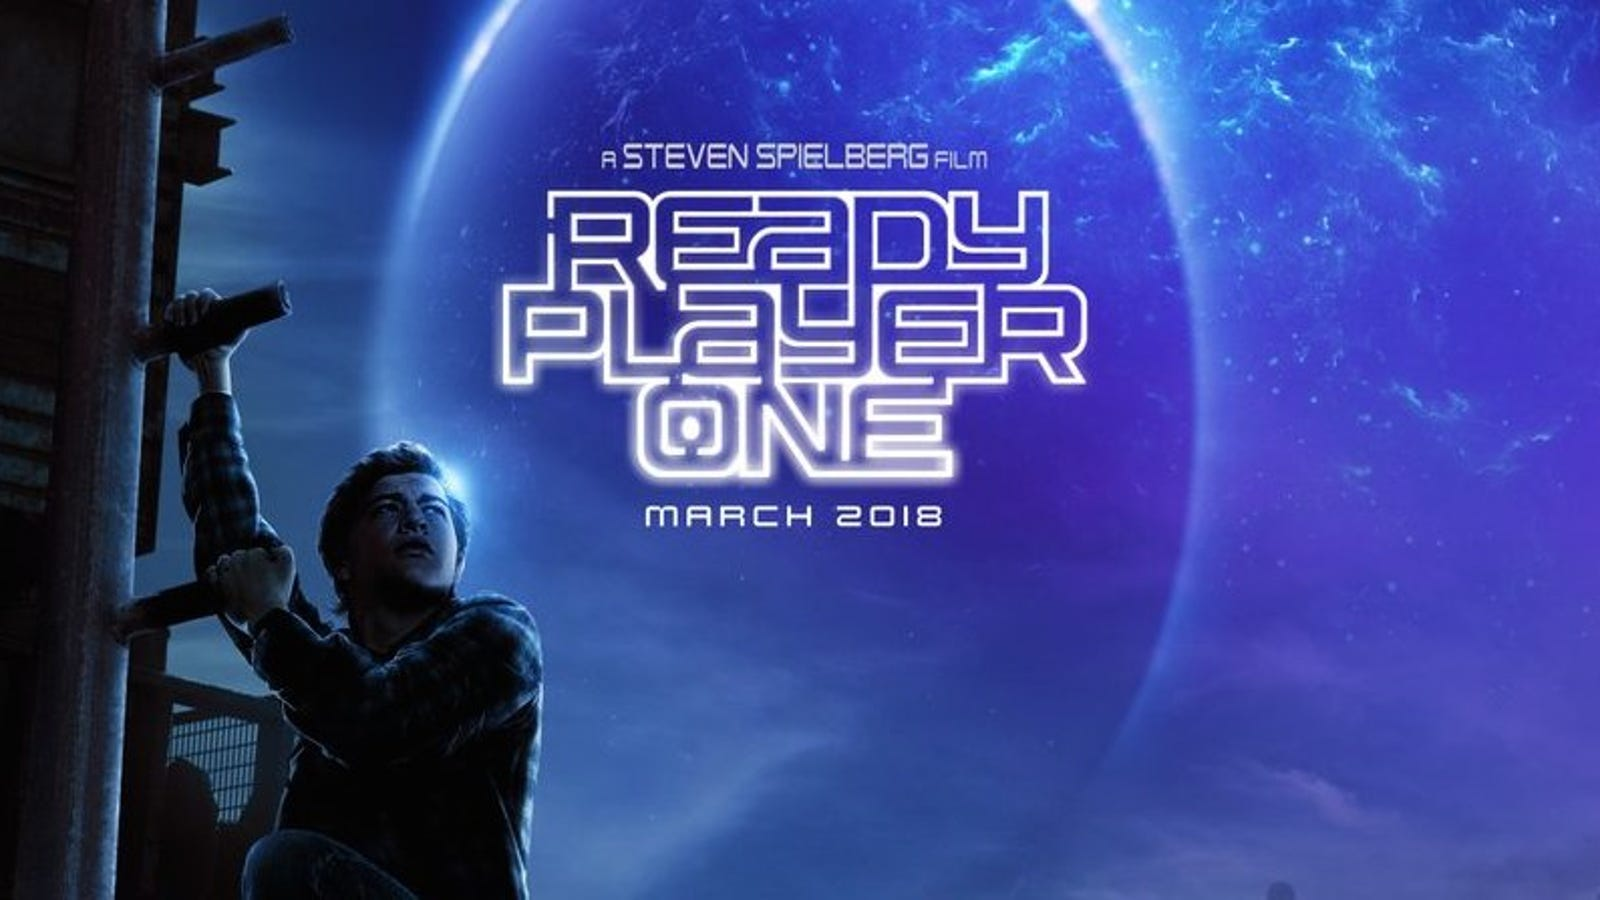 The Ready Player One poster is terrible, but possibly accurate